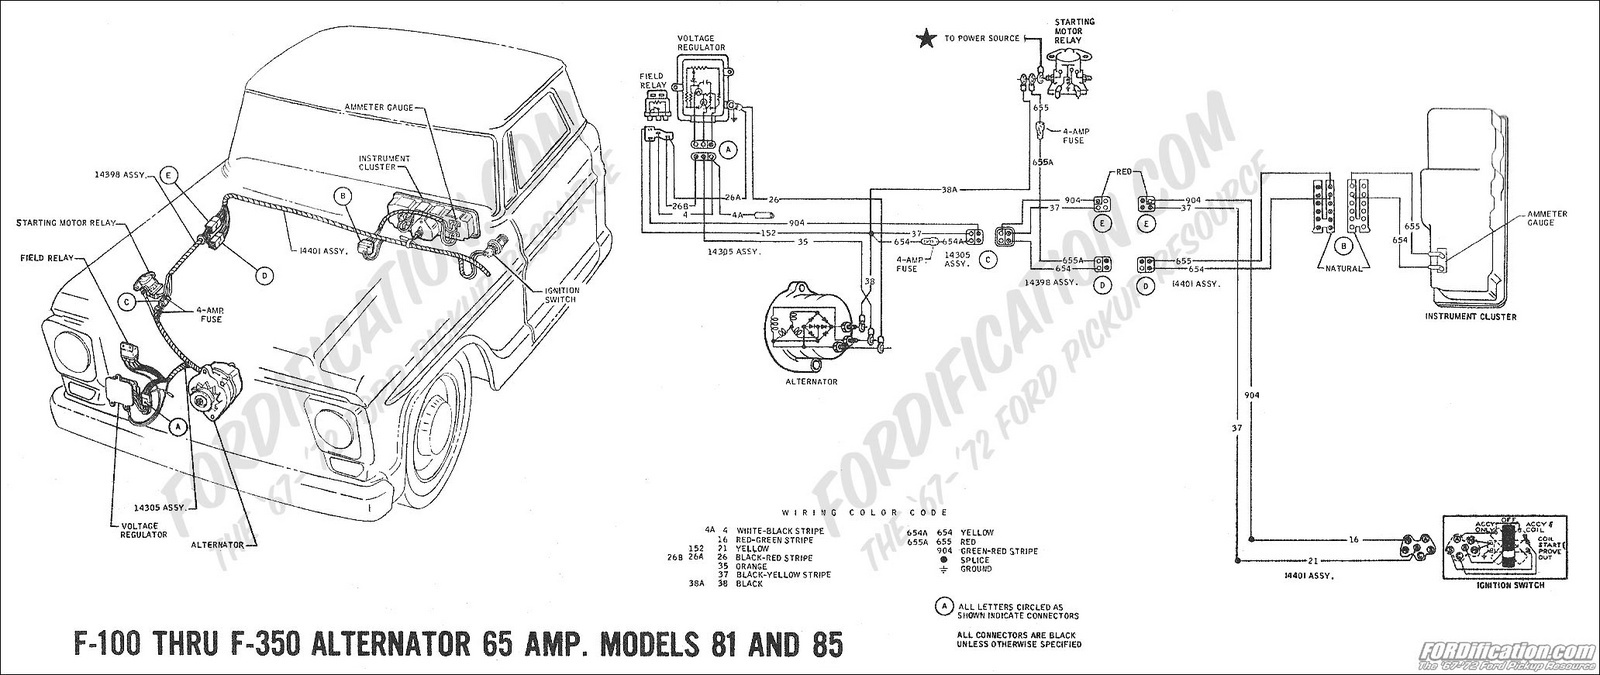 2002 Ford Focus Wiring Diagram from static.cargurus.com